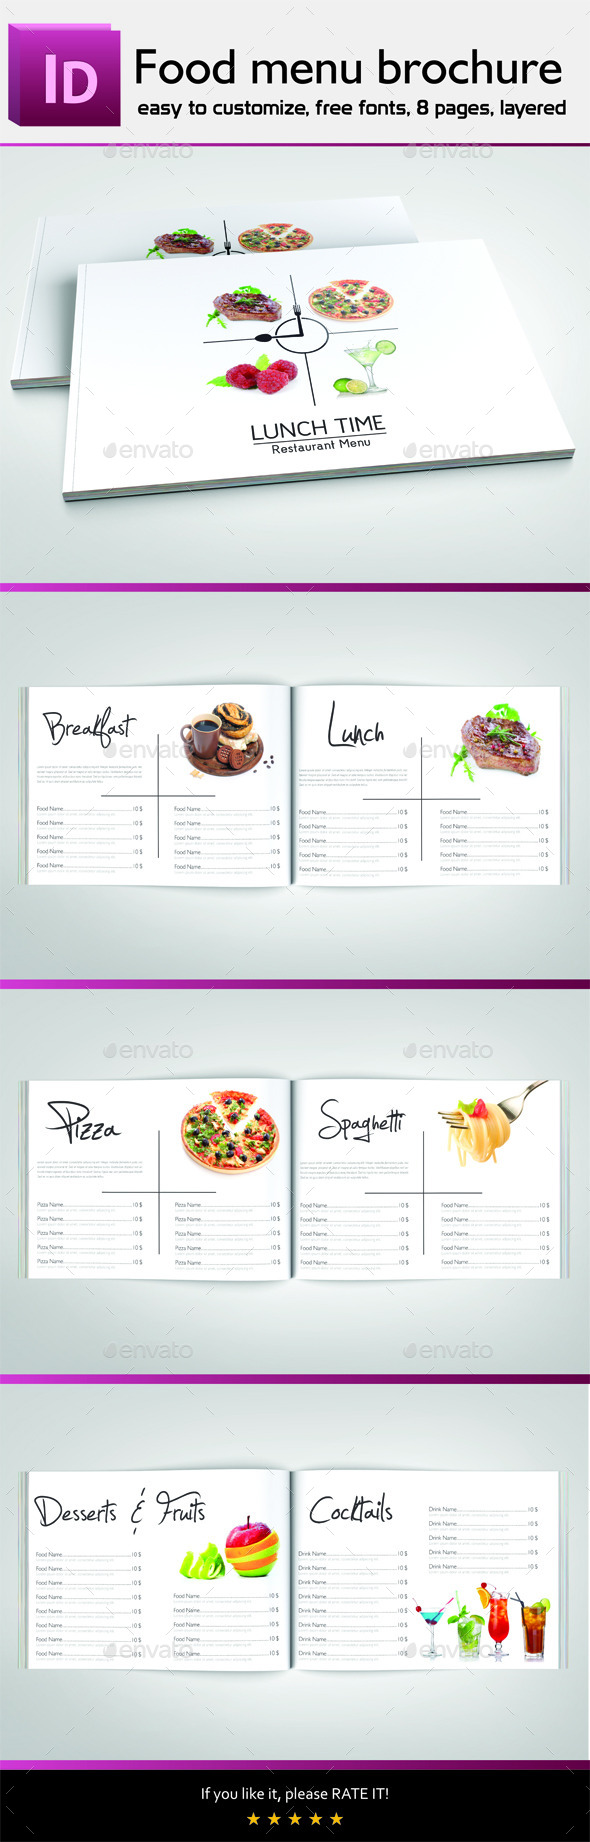 indesign templates for restaurant menu for free. Black Bedroom Furniture Sets. Home Design Ideas